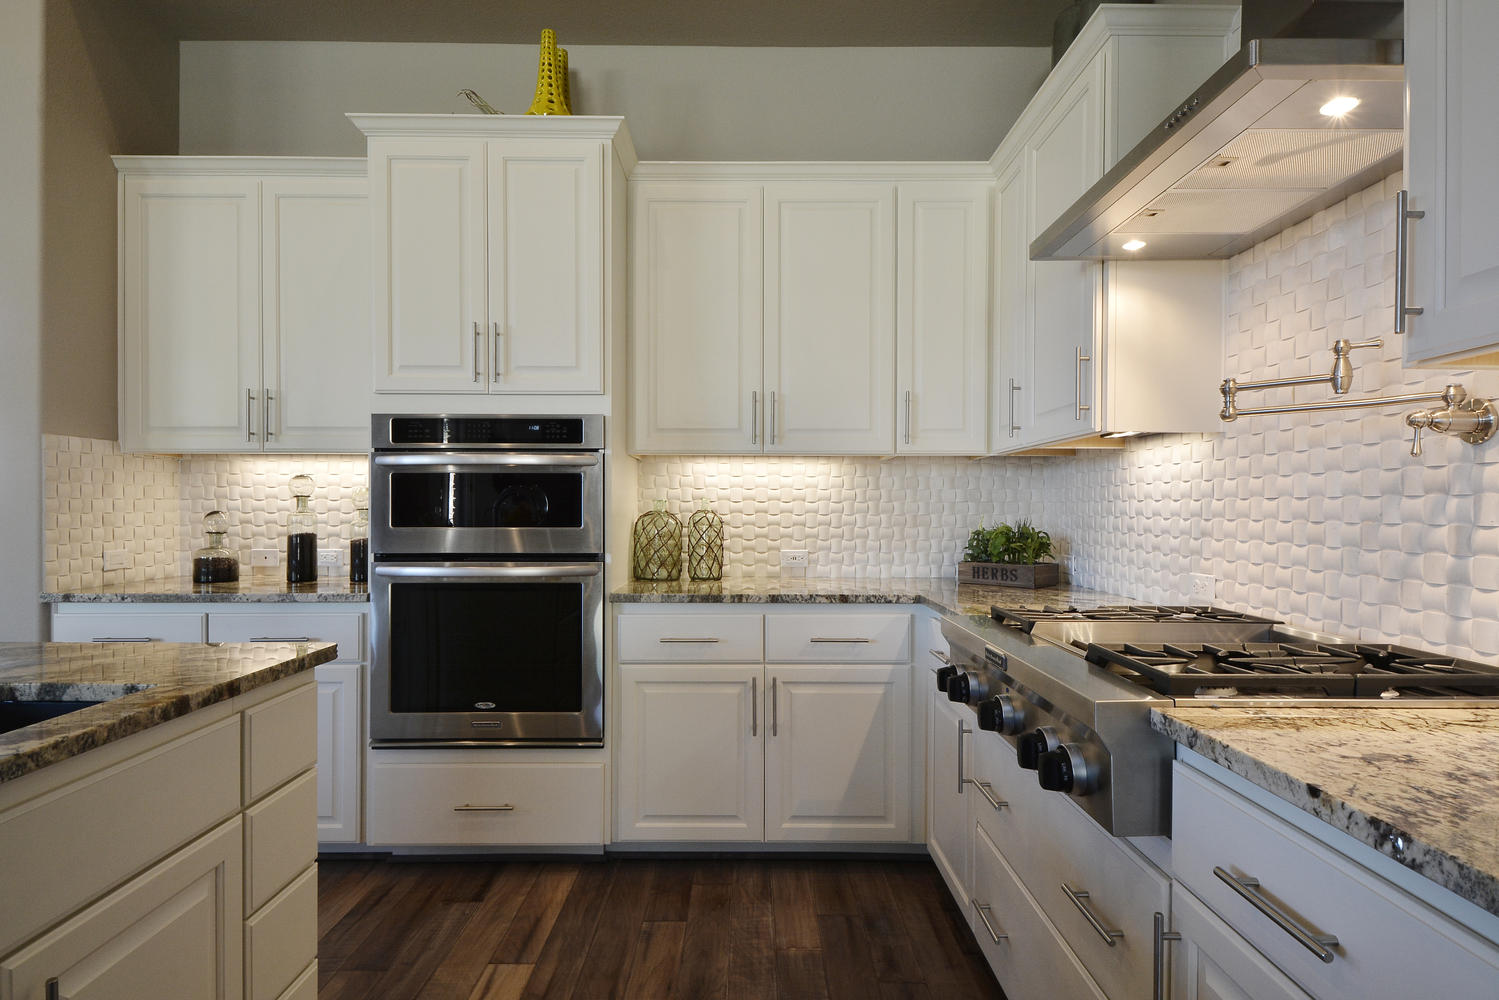 White kitchen cabinets burrows cabinets central texas for White kitchen cabinets